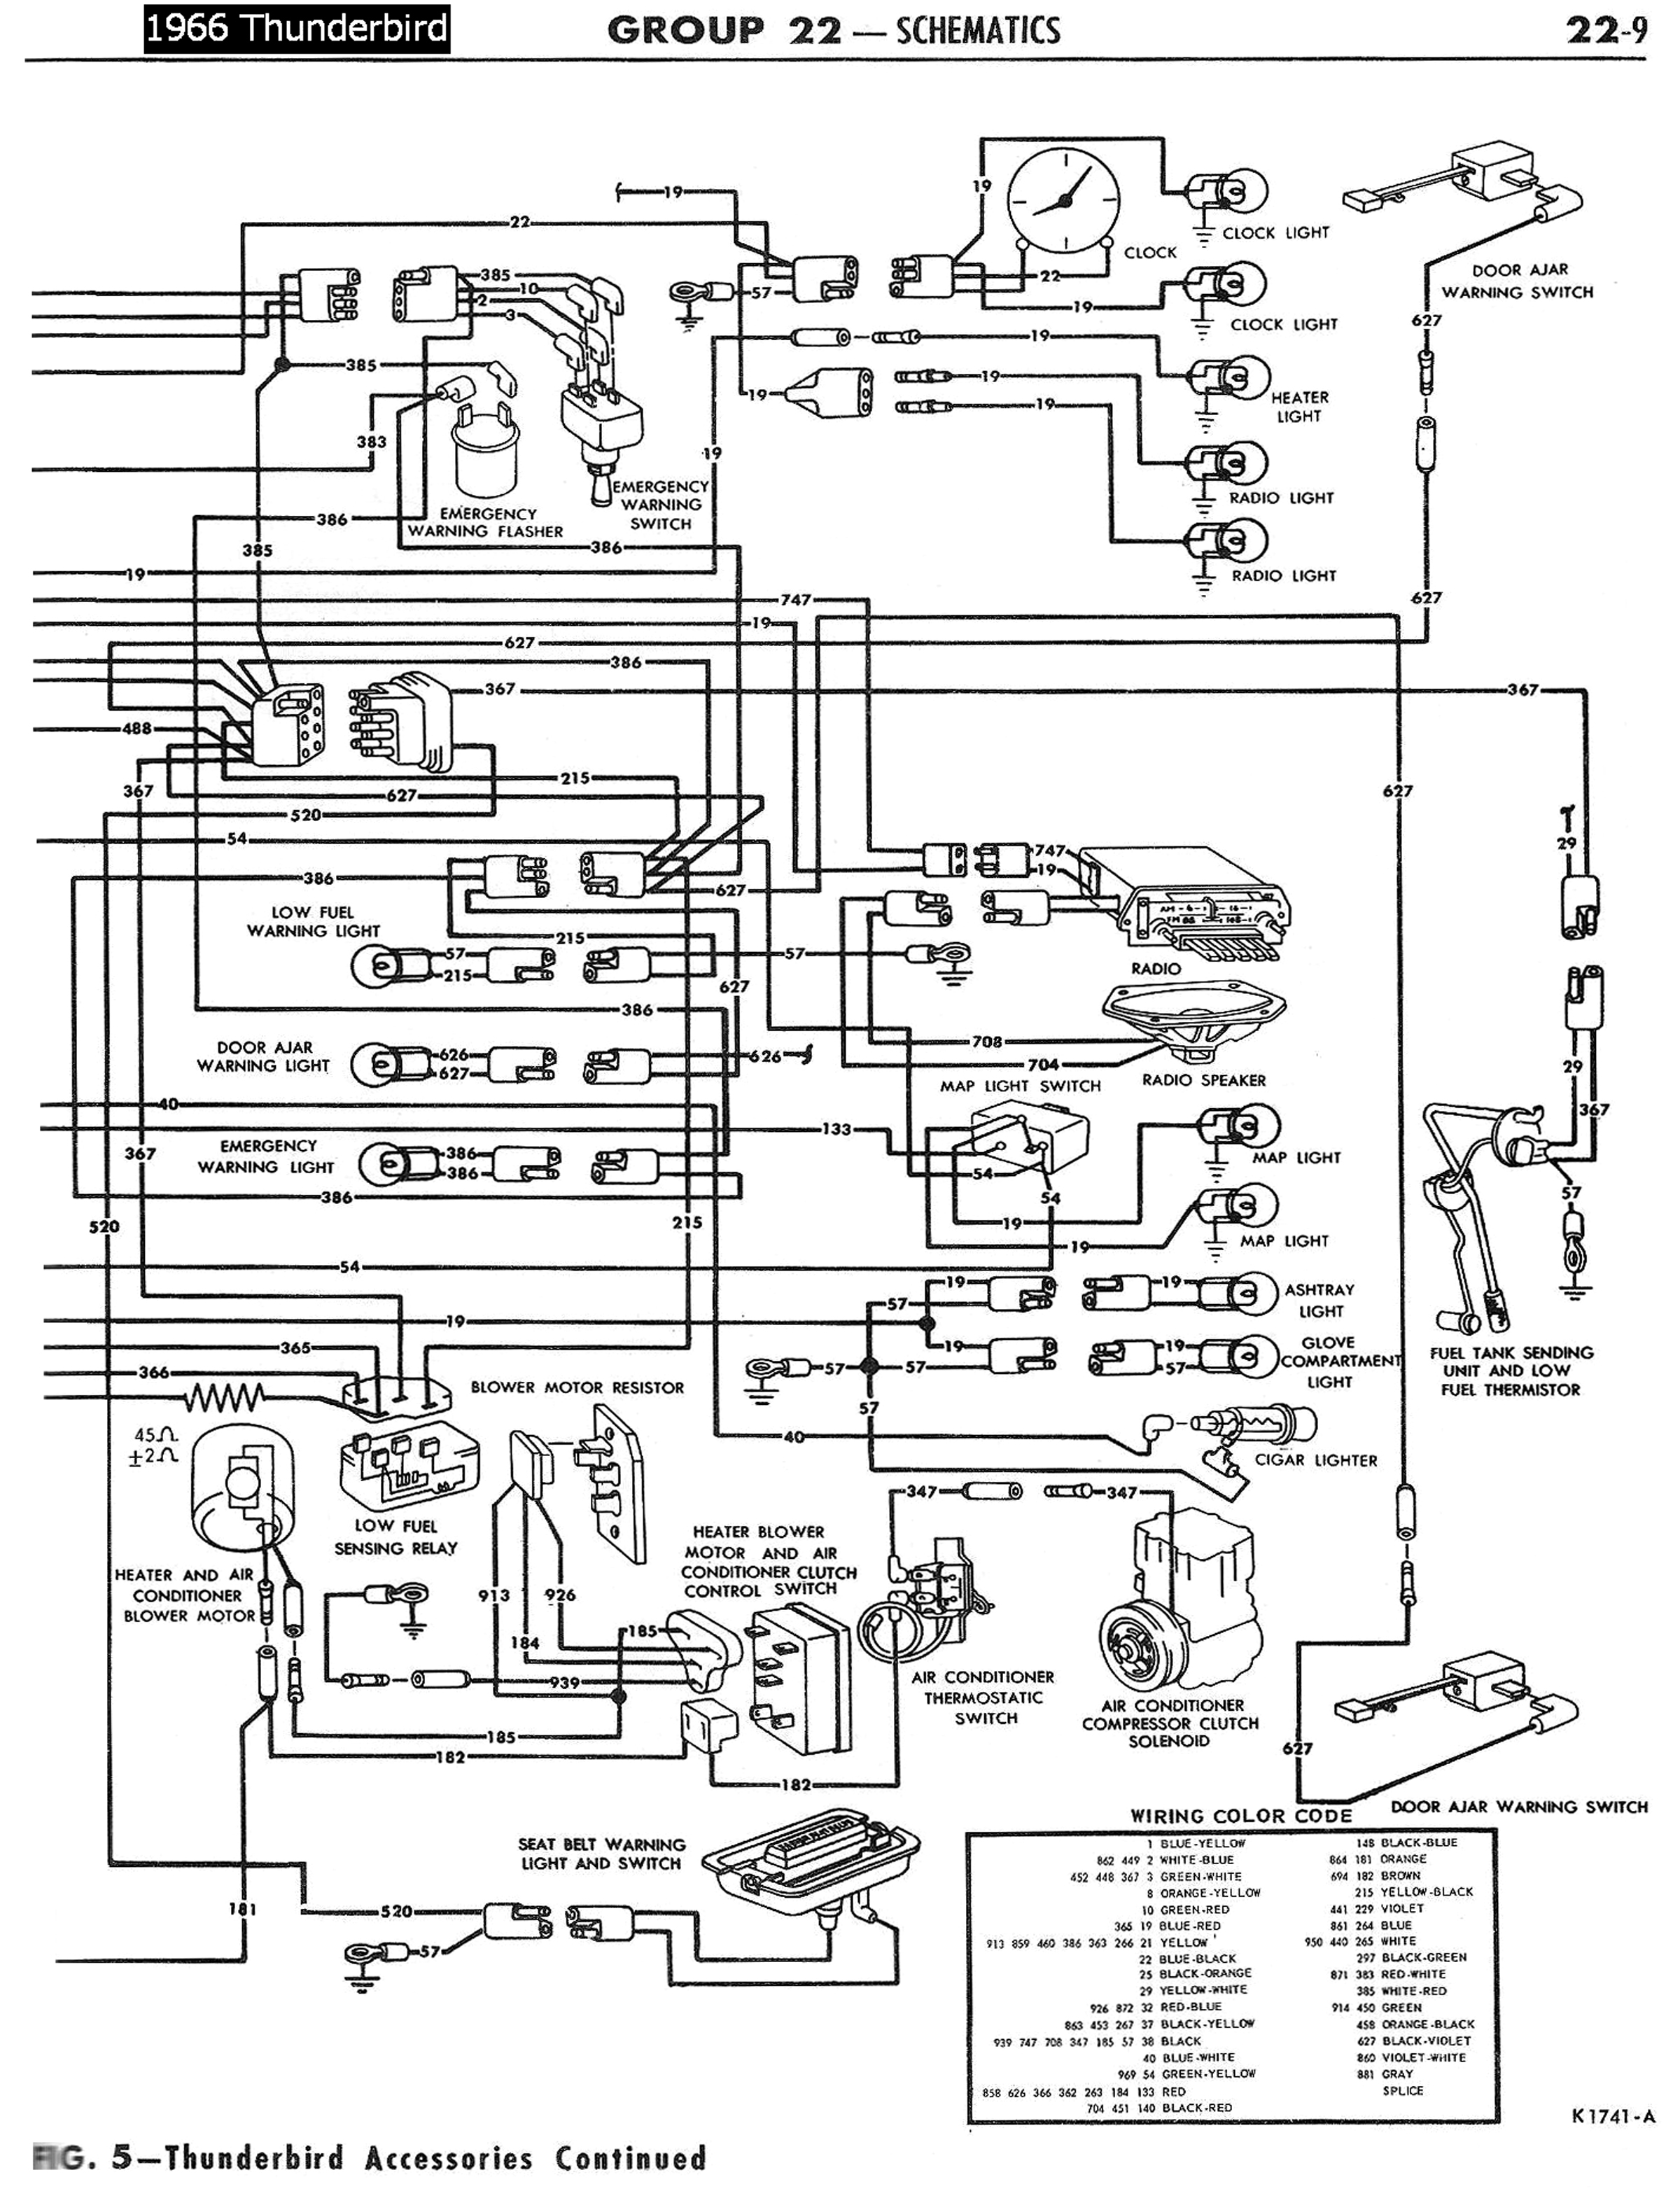 Wiring Diagram For 1958 International Truck Turn Signals on 68 mustang dash wiring